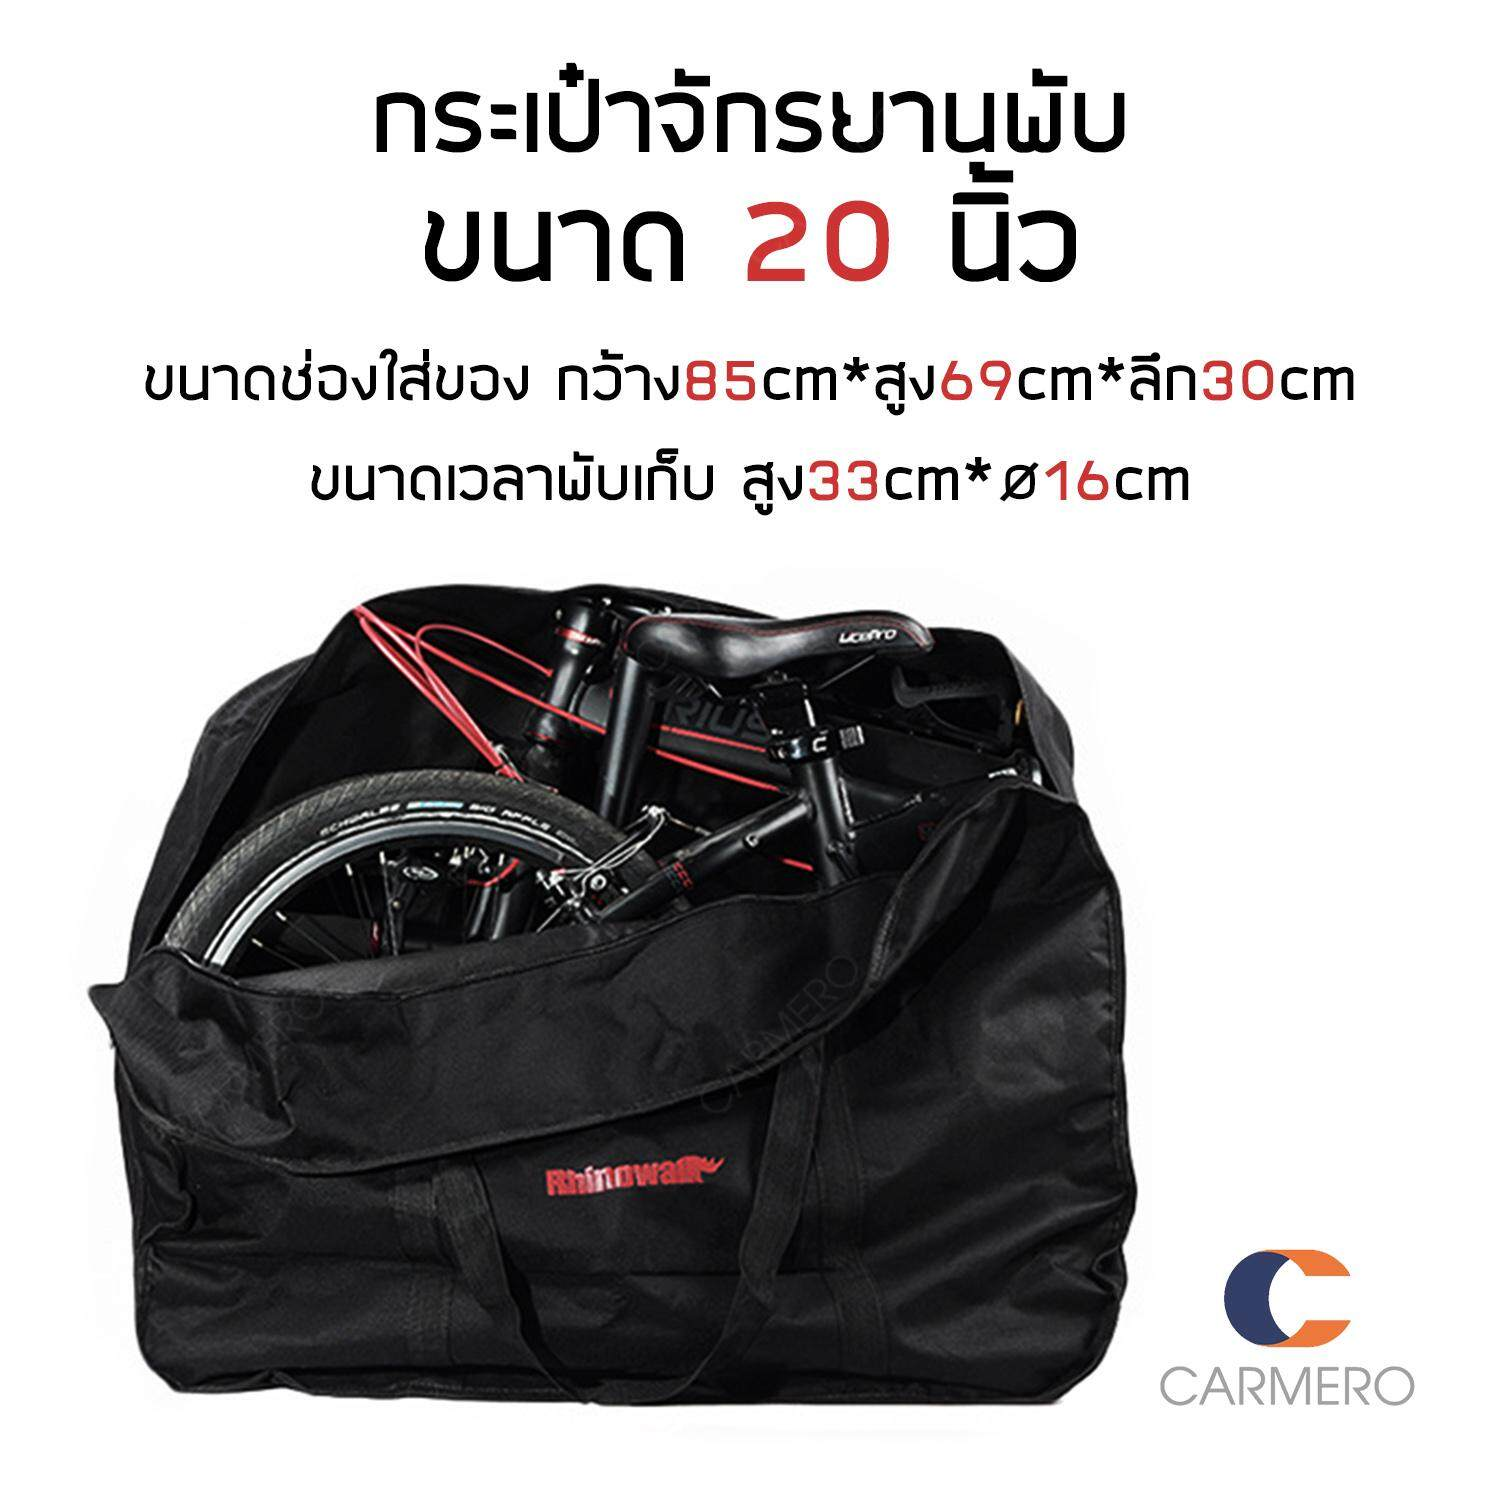 Carmero กระเป๋าจักรยาน กระเป๋าใส่จักรยาน จักรยานพับ 20นิ้ว เที่ยว เดินทาง Bike Travel Bag Case Bicycle Folding Carry Pouch 20 Inch By Carmero.